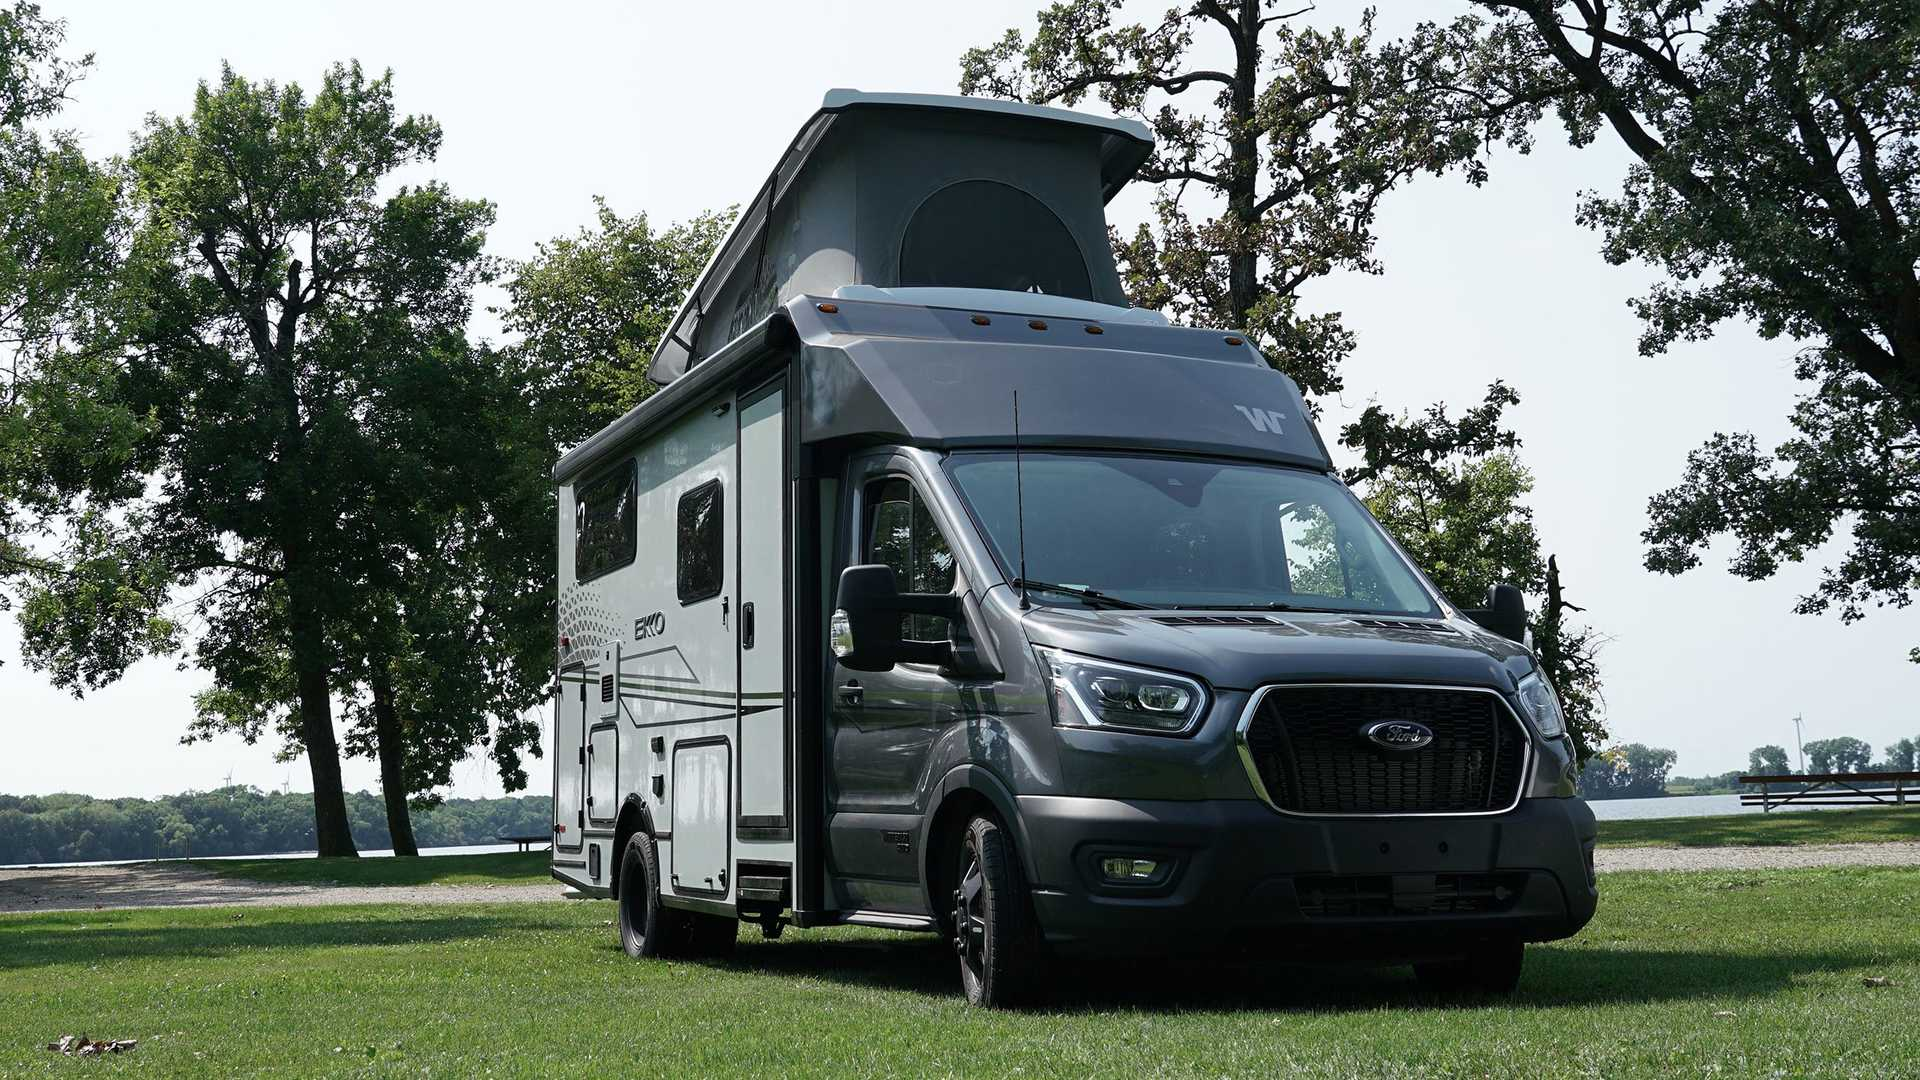 Nearly 10 months after revealing its Ekko campervan, Winnebago has introduced a new variant of it dubbed the Pop Top.